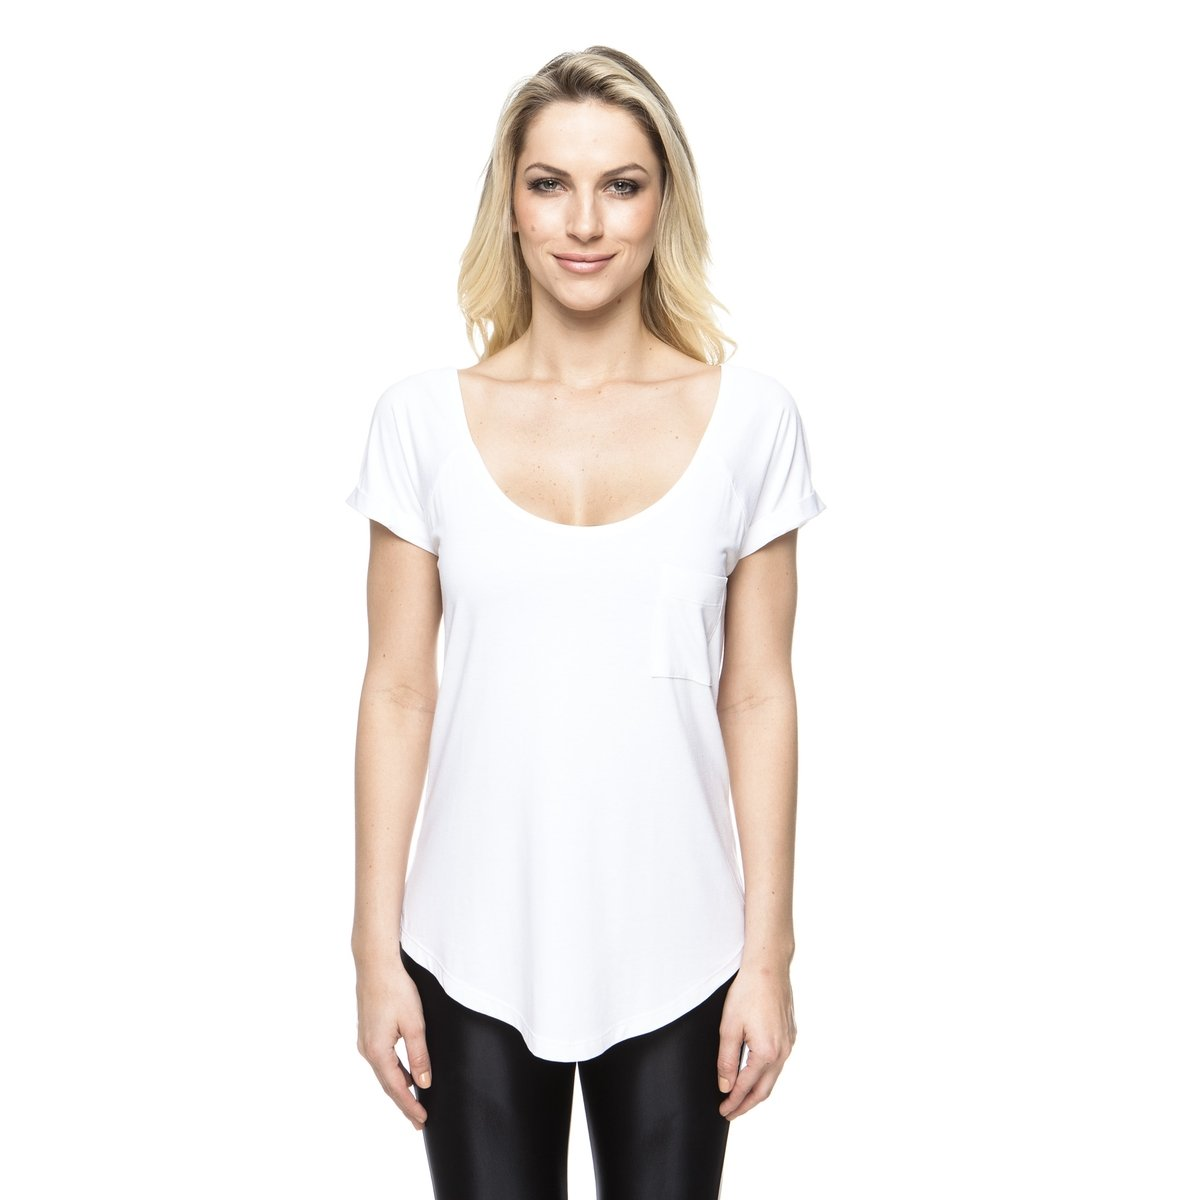 Branco Camiseta Up Up Camiseta Pocket New Camiseta Vis New Vis New Branco Pocket 7xfrn7P